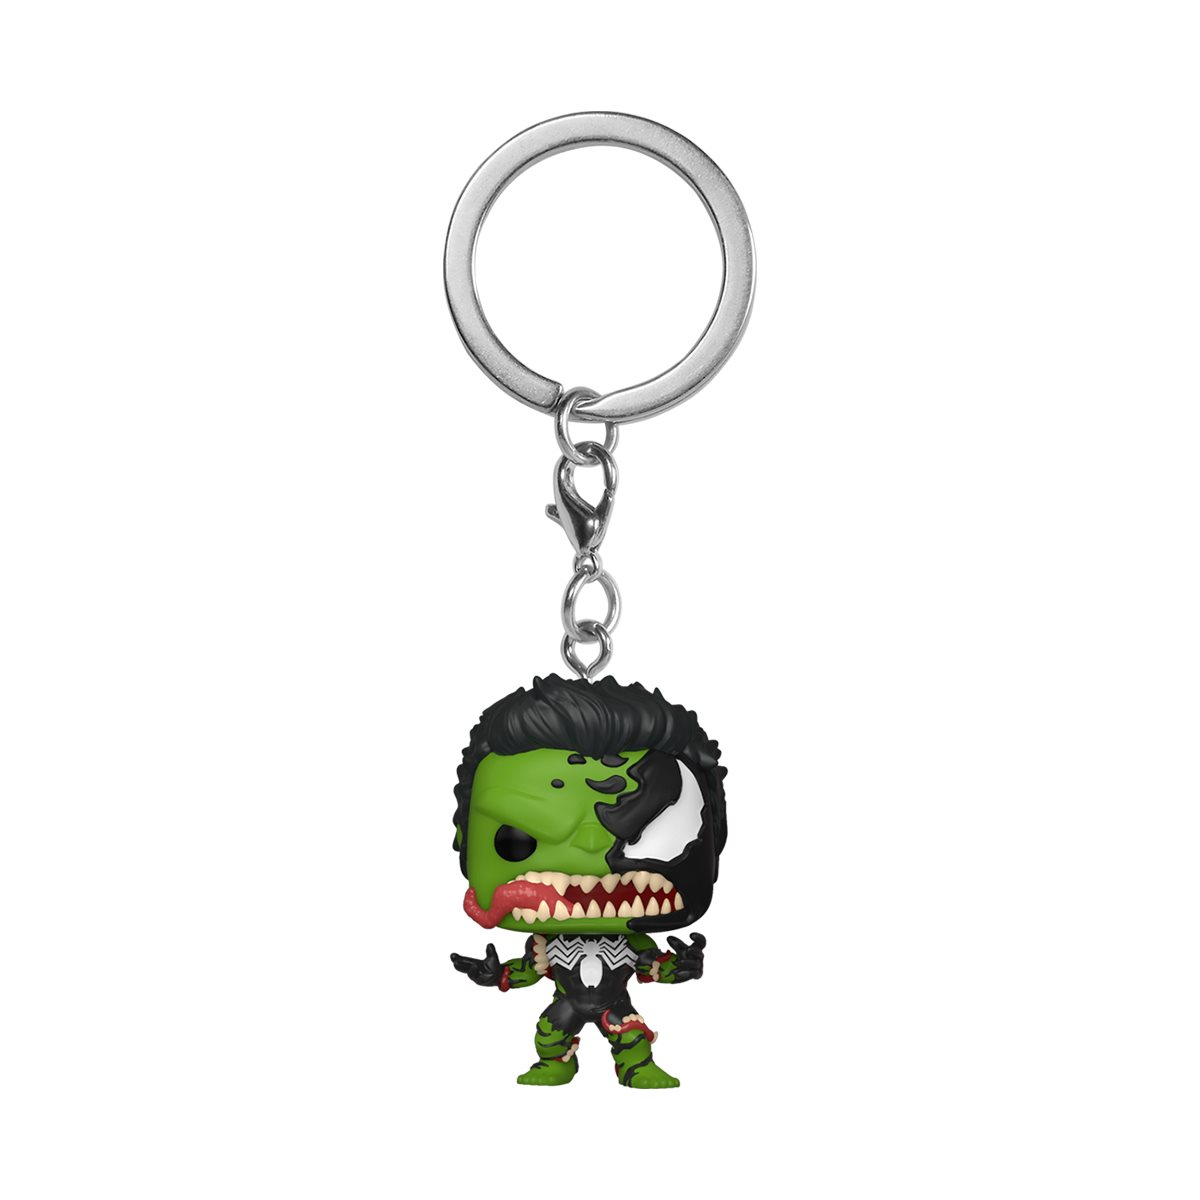 MARVEL:VENOM VENOMIZED GROOT FUNKO POCKET POP KEYCHAIN